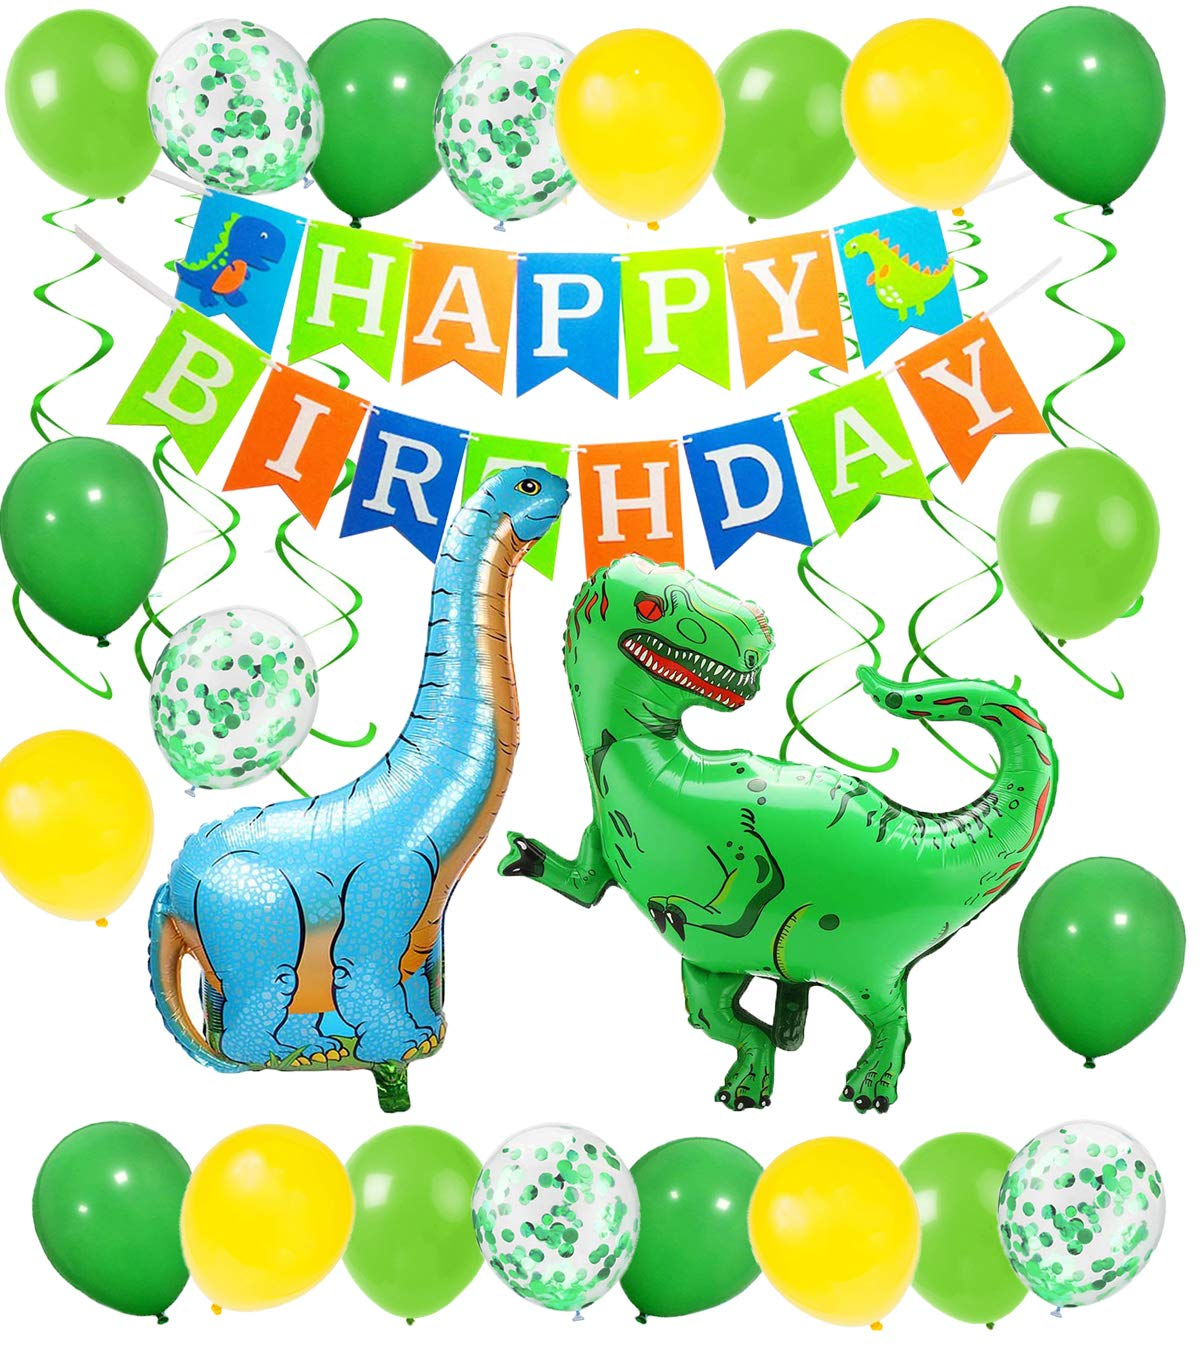 Dinosaur Balloons Dino Happy Birthday Banner Birthday Party Decoration for Boys and Girls Dinosaur Theme Party Supplies Favors for Baby Shower Jungle Birthday